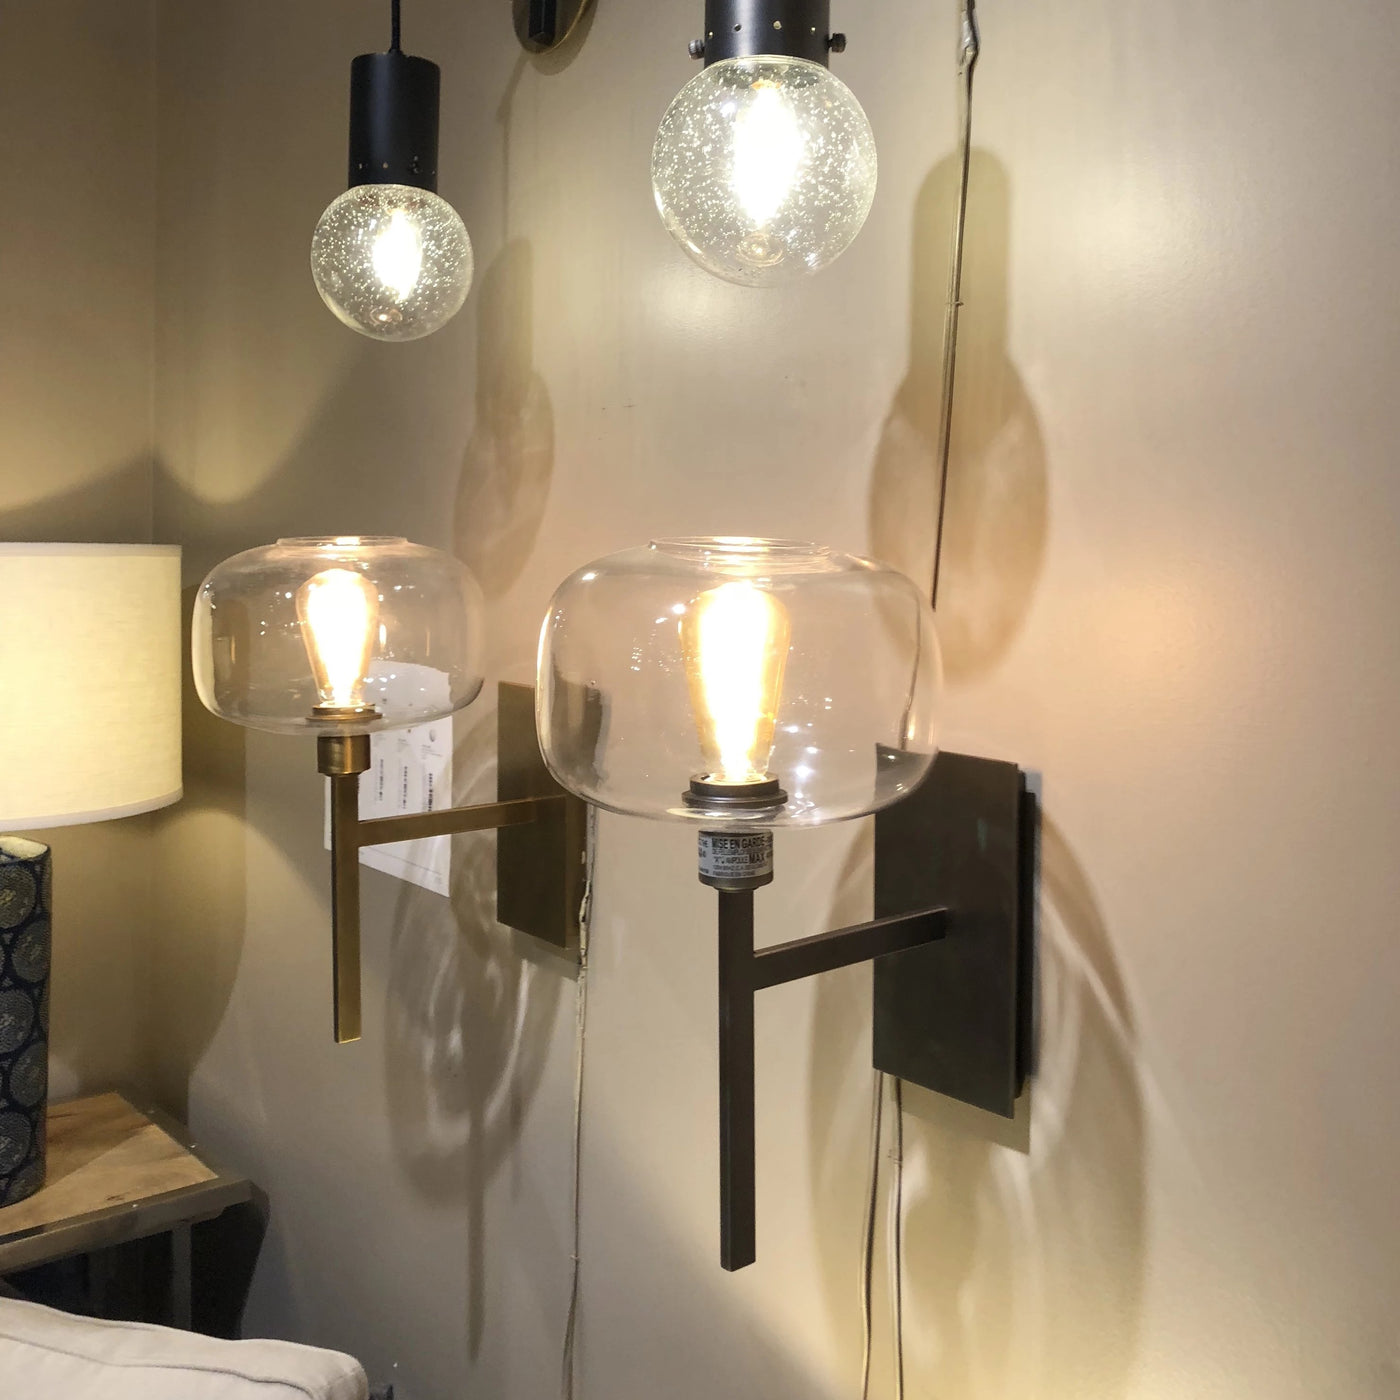 jamie young scando mod sconce showroom wall